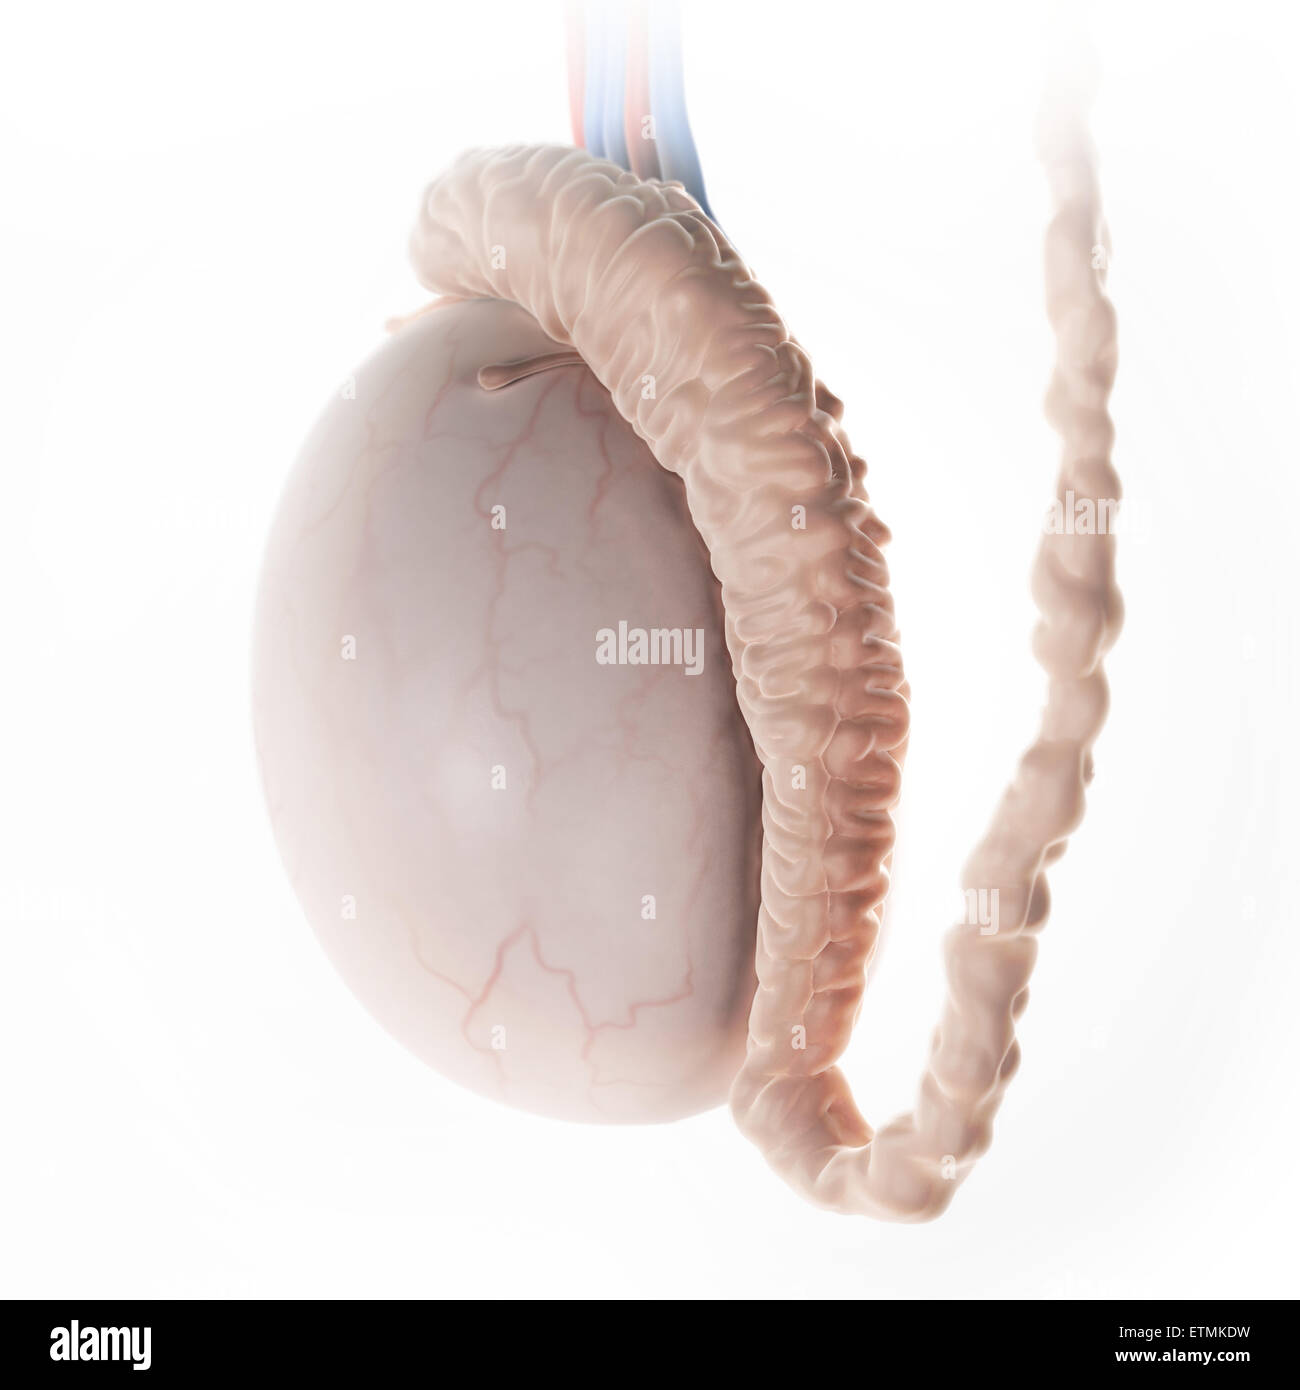 Illustration of a testicle, part of the male reproductive system. - Stock Image